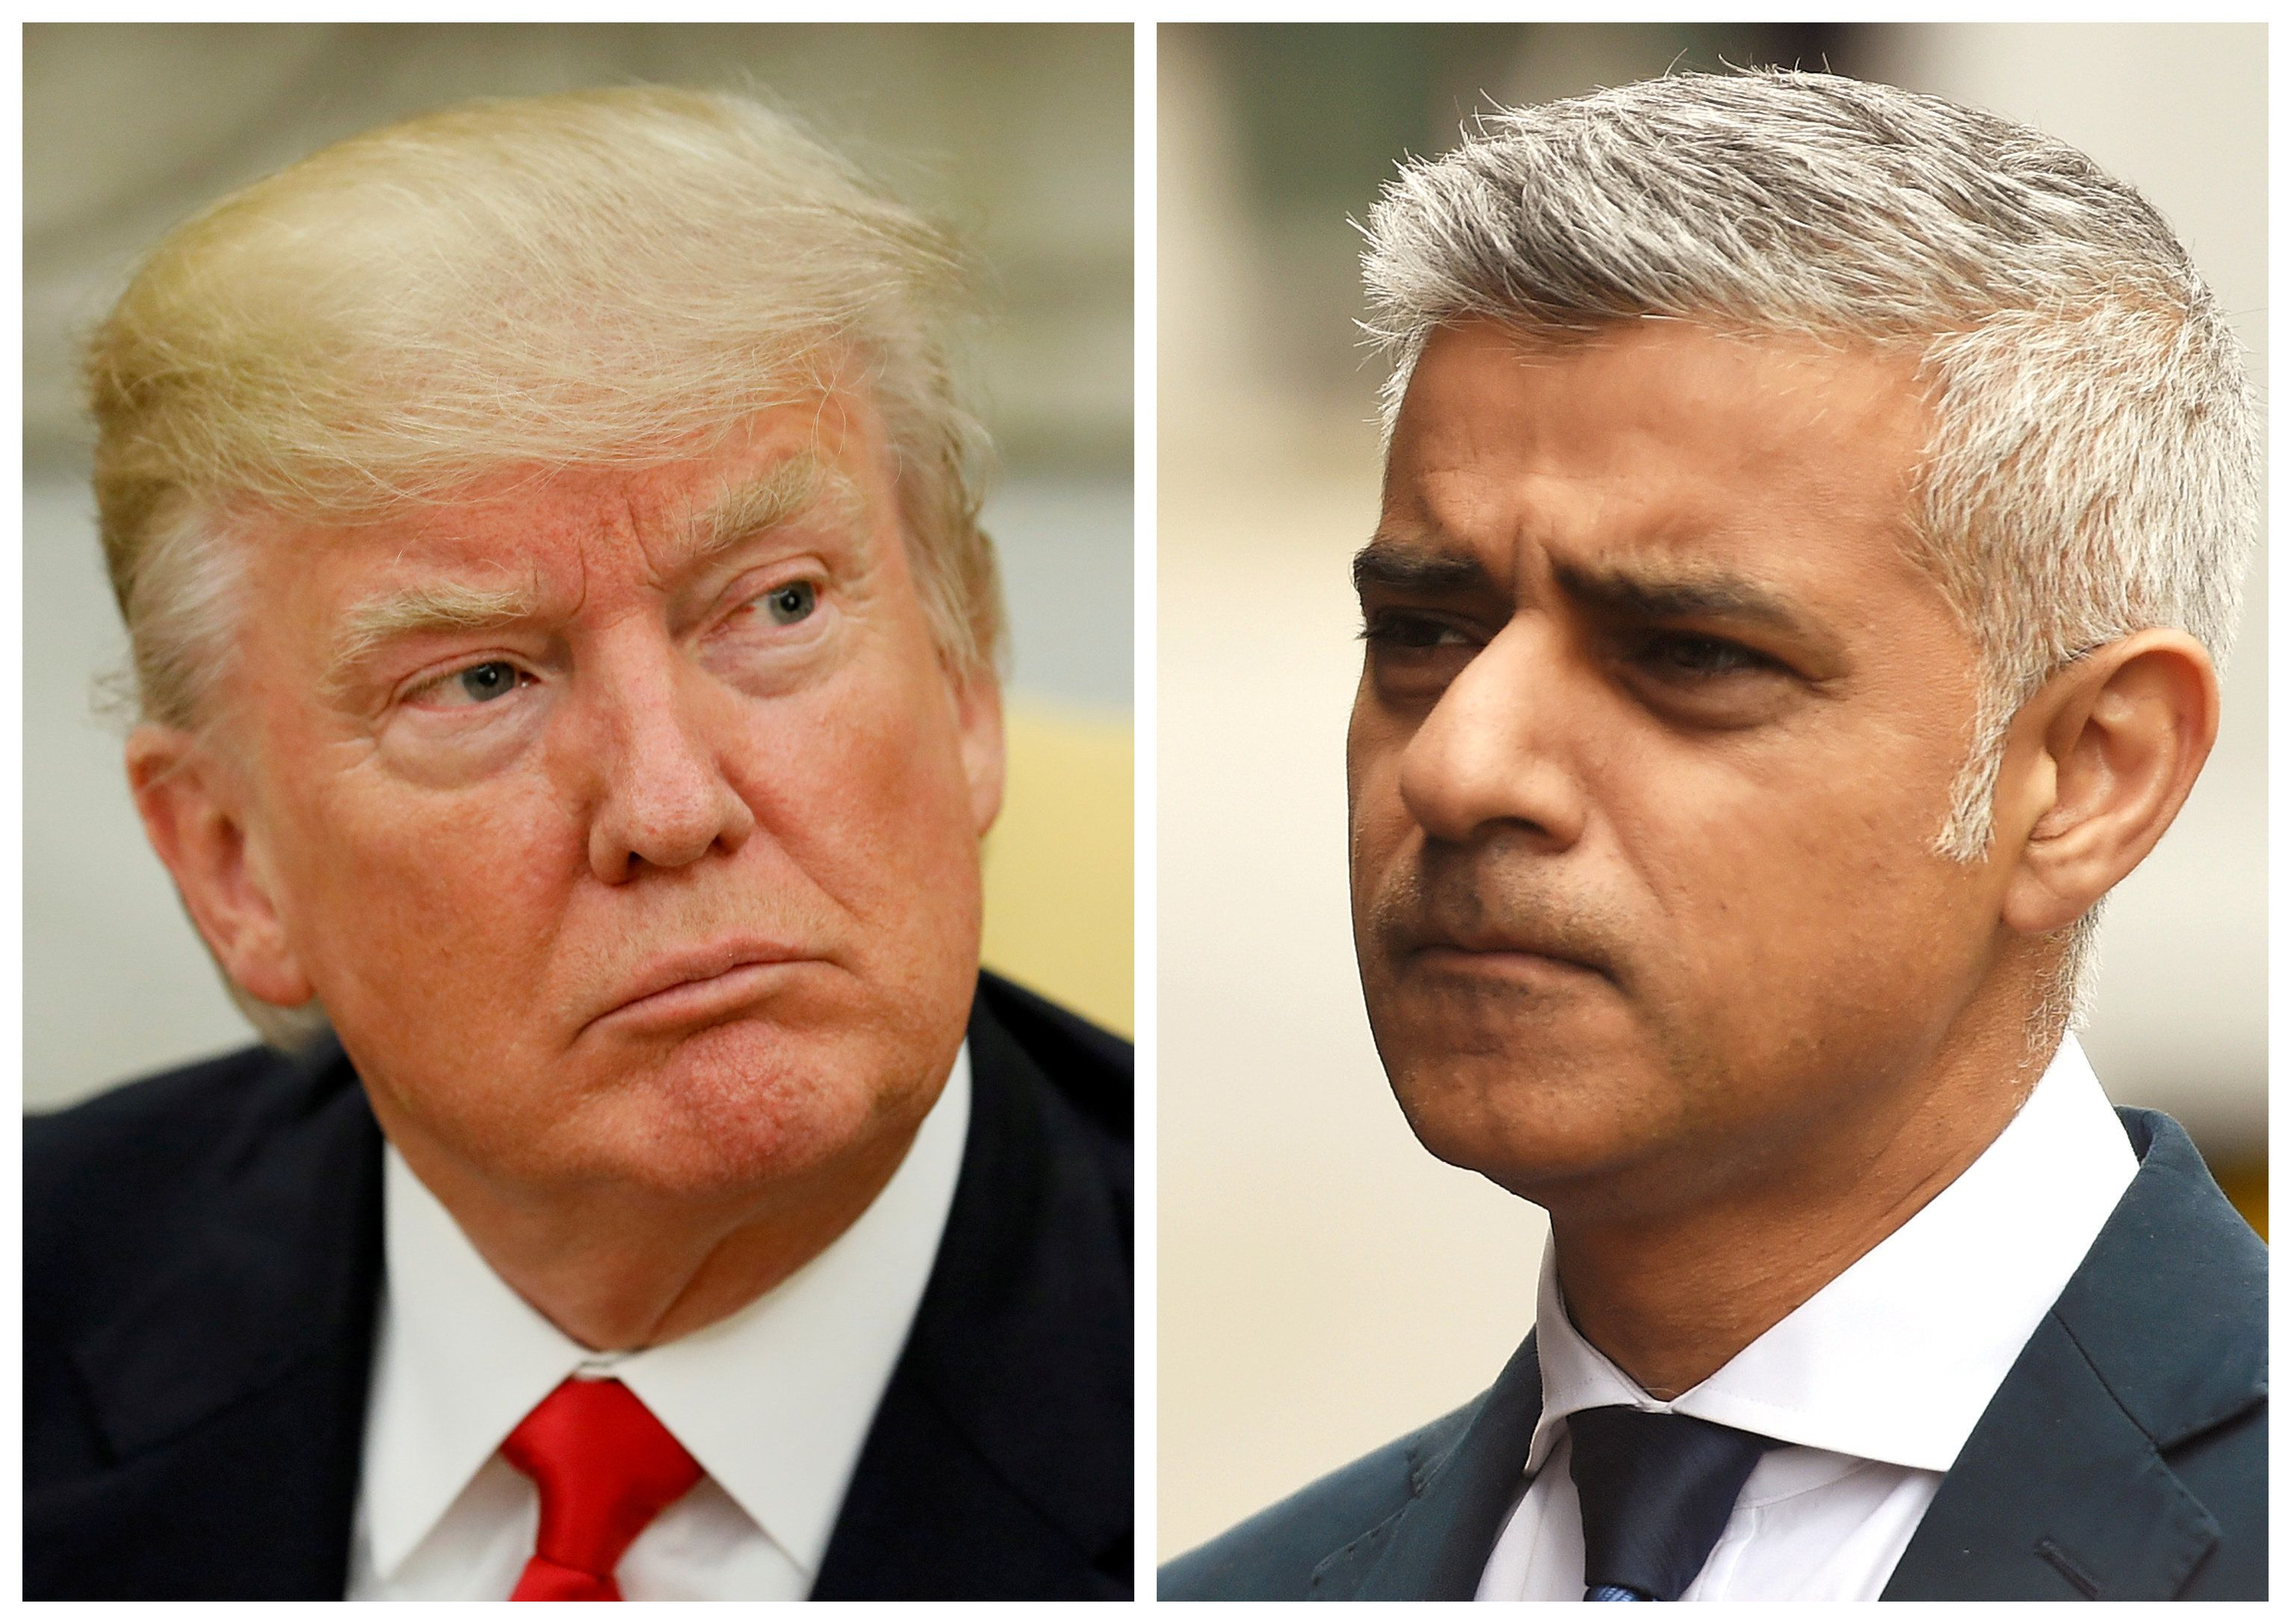 A combination photo shows U.S. President Donald Trump (L) in the Oval Office at the White House in Washington, DC, U.S. on May 31, 2017 and Mayor of London Sadiq Khan at the scene of the attack on London Bridge and Borough Market in central London, Britain, June 5, 2017.   REUTERS/Jonathan Ernst (L) and REUTERS/Clodagh Kilcoyne (R)/File Photos